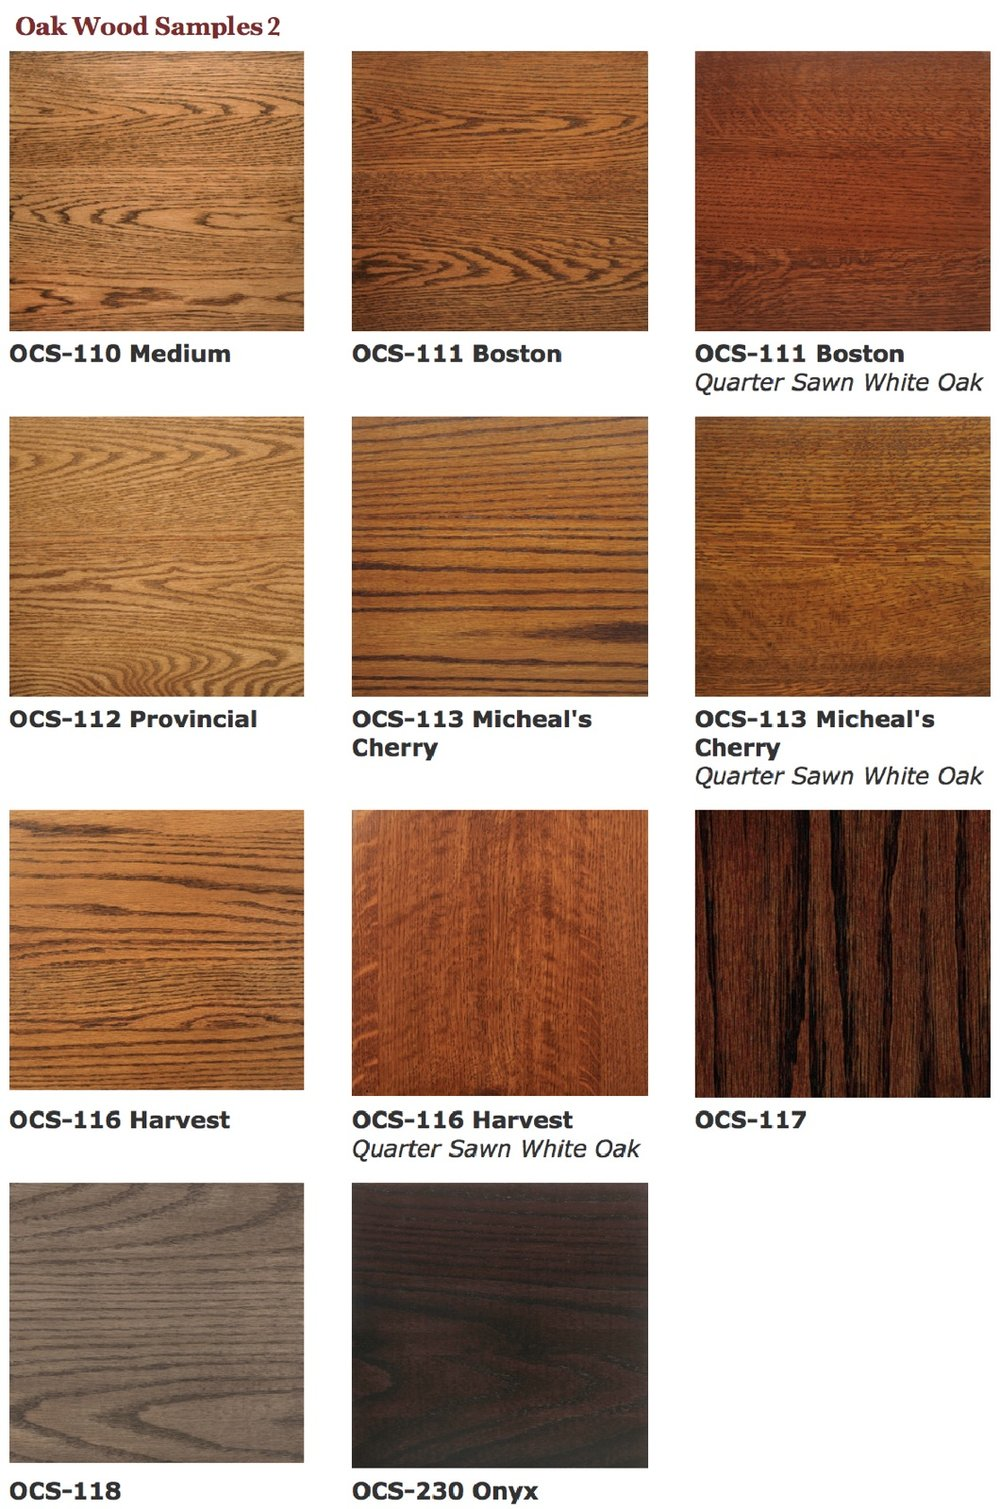 OCS Oak Wood Samples 2.jpeg